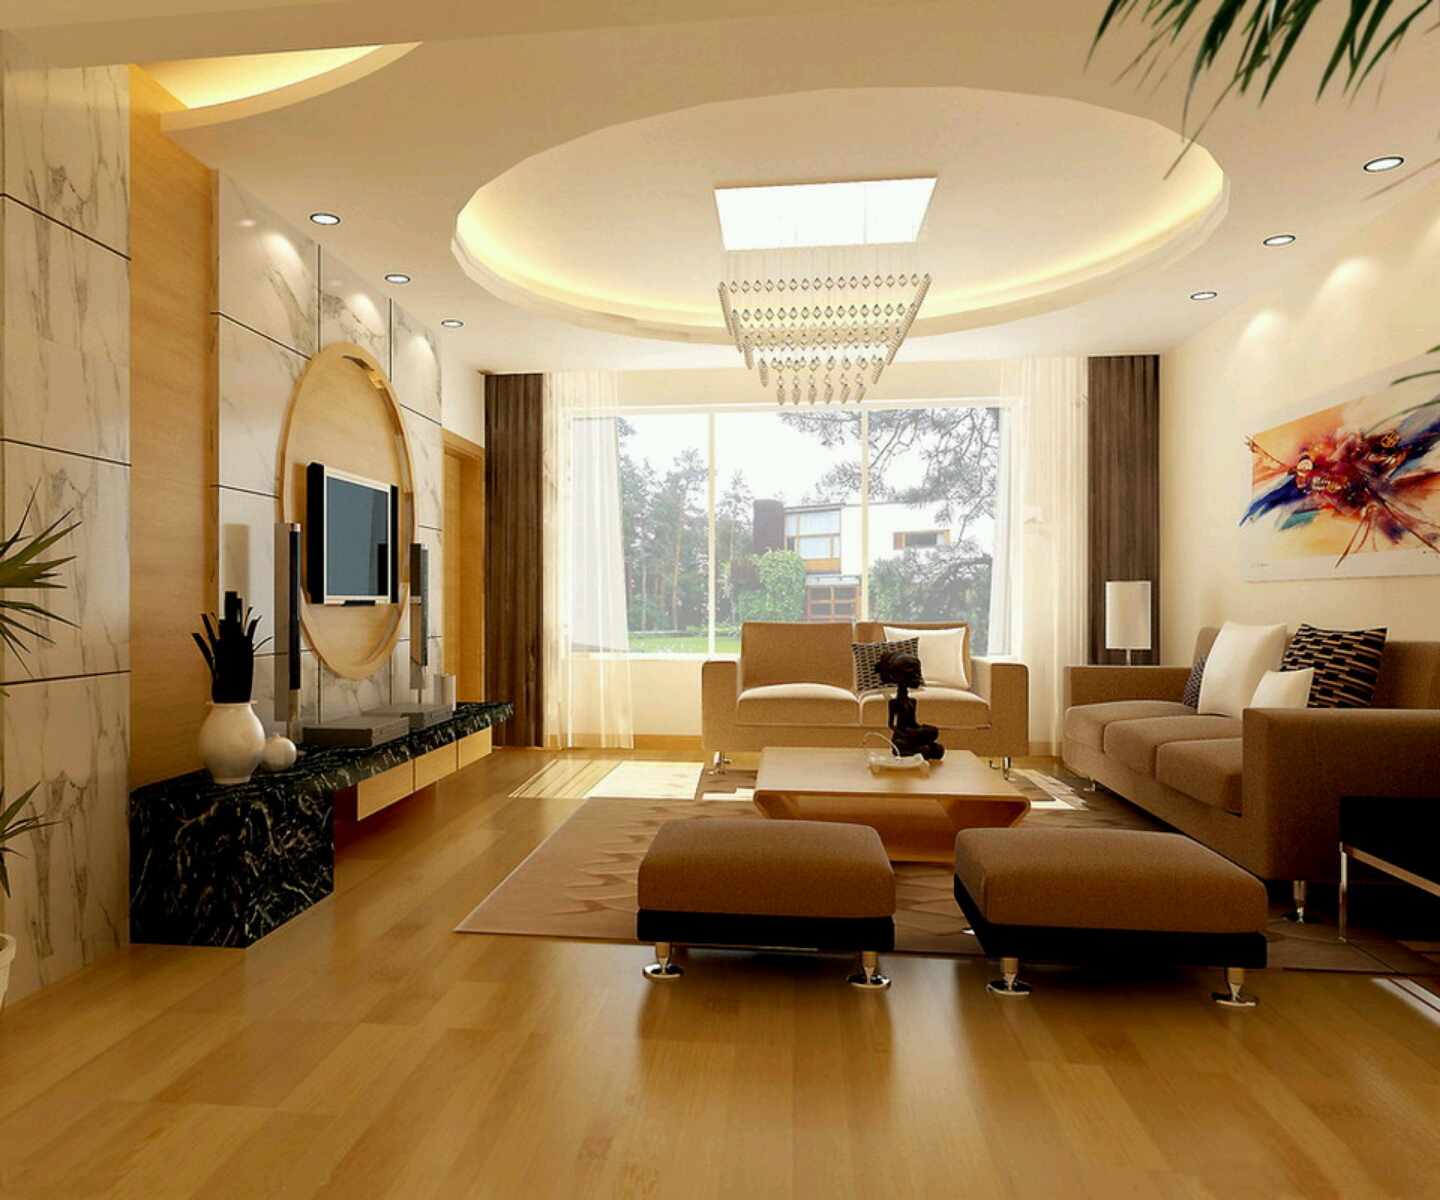 Modern interior decoration living rooms ceiling designs for Living room interior design